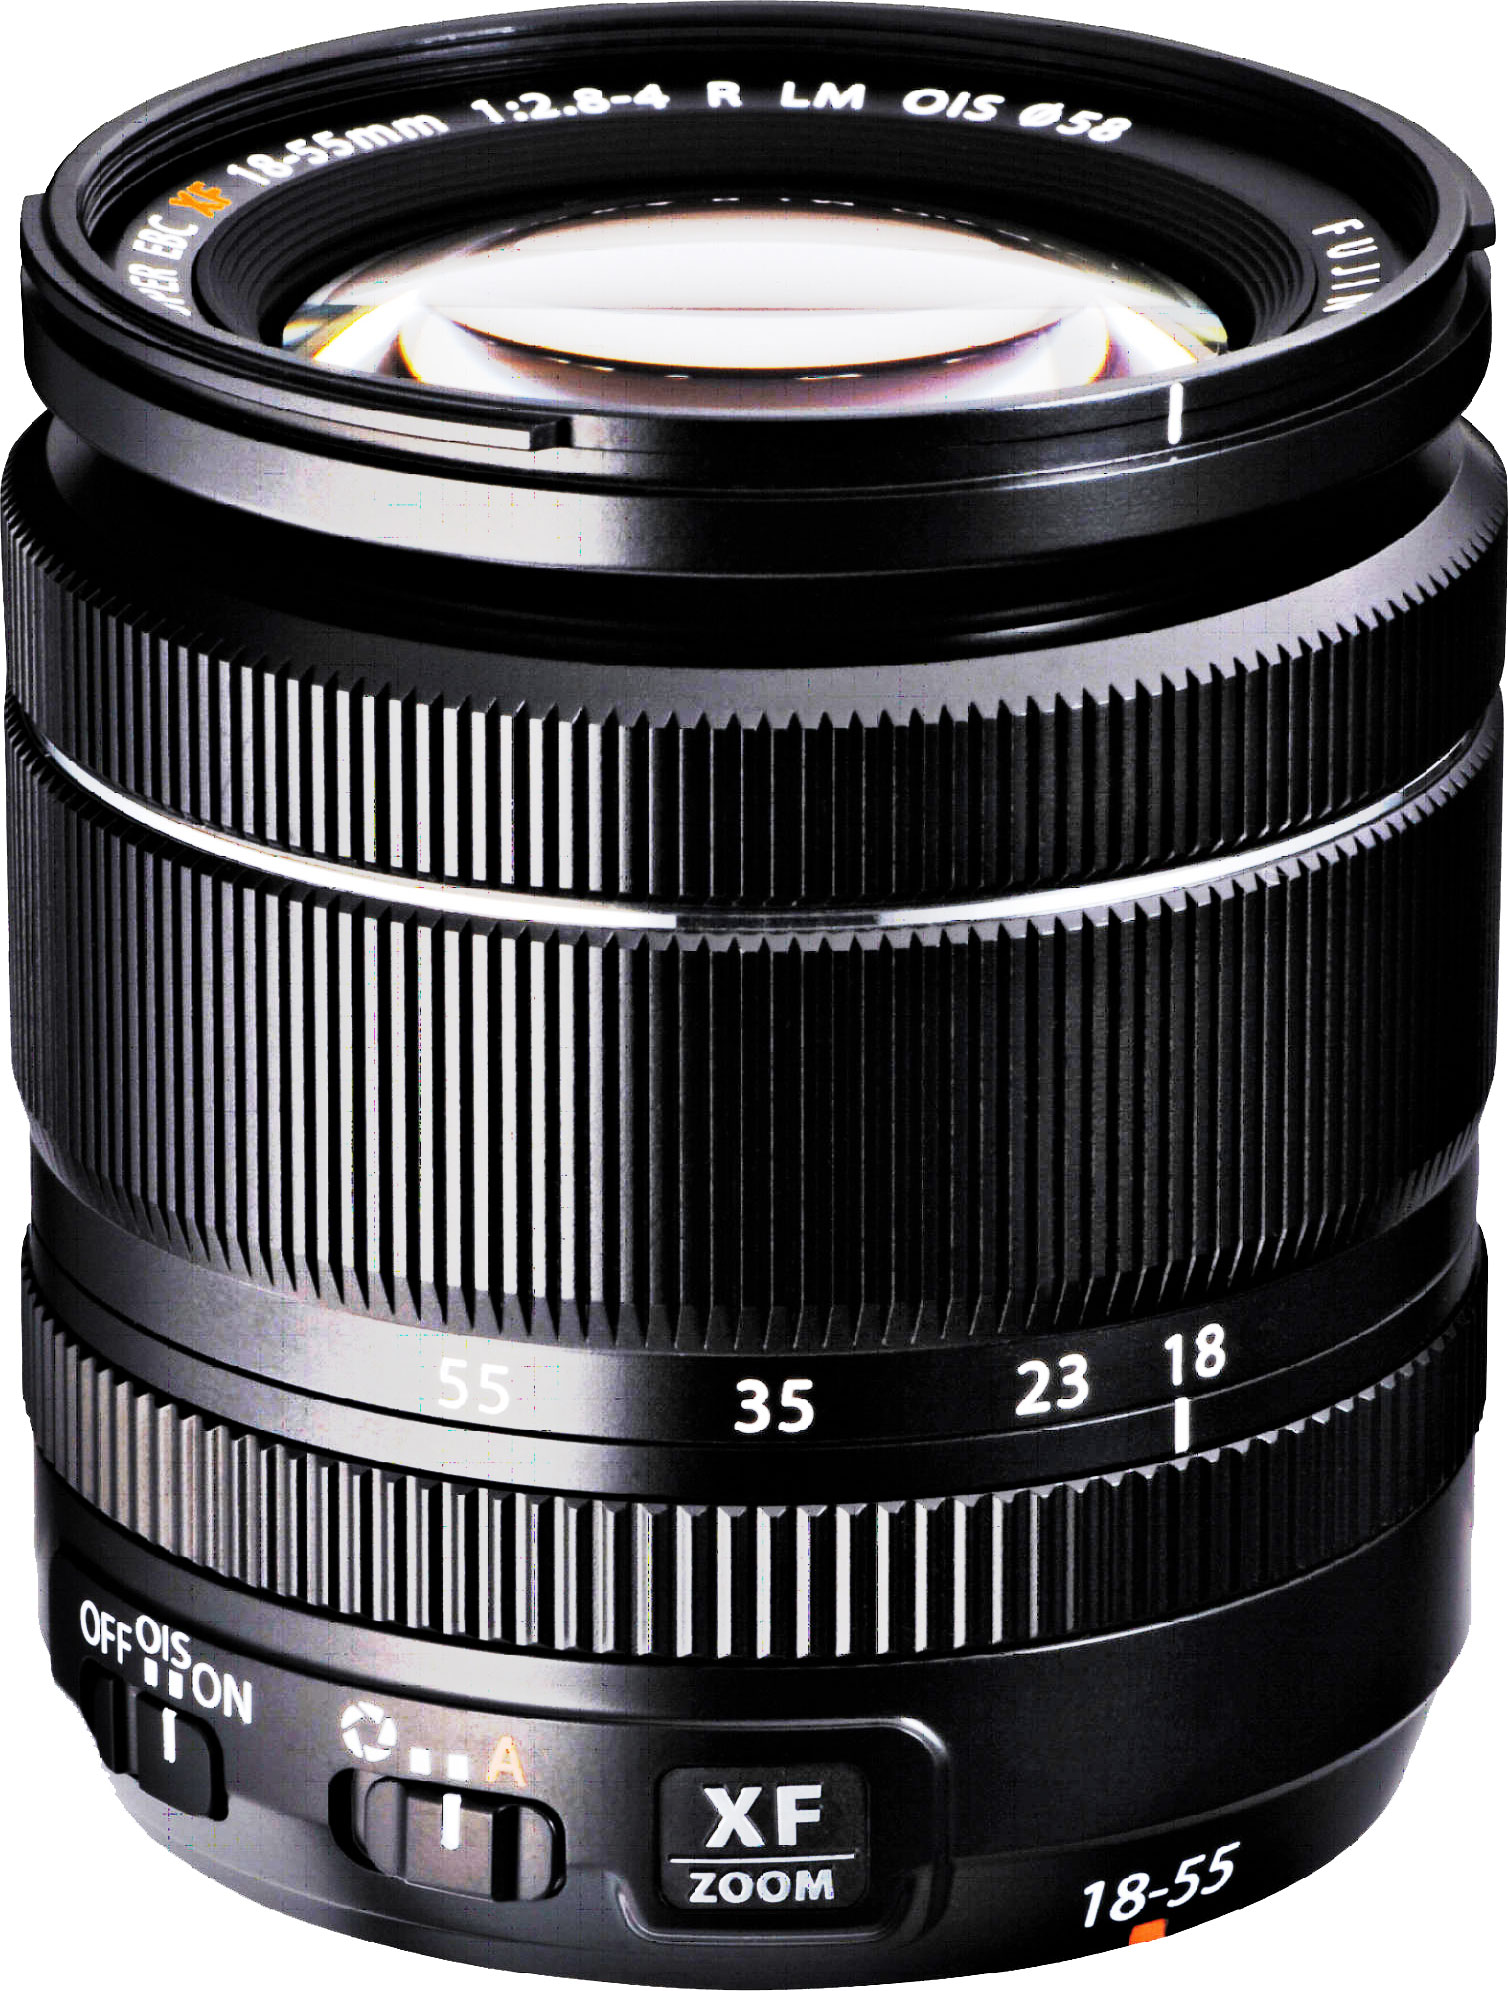 New Fujifilm 14mm F 28 And 18 55mm 40 Xf Lenses Round Out Fujinon Xf18mm 20 R Lens Lm Ois